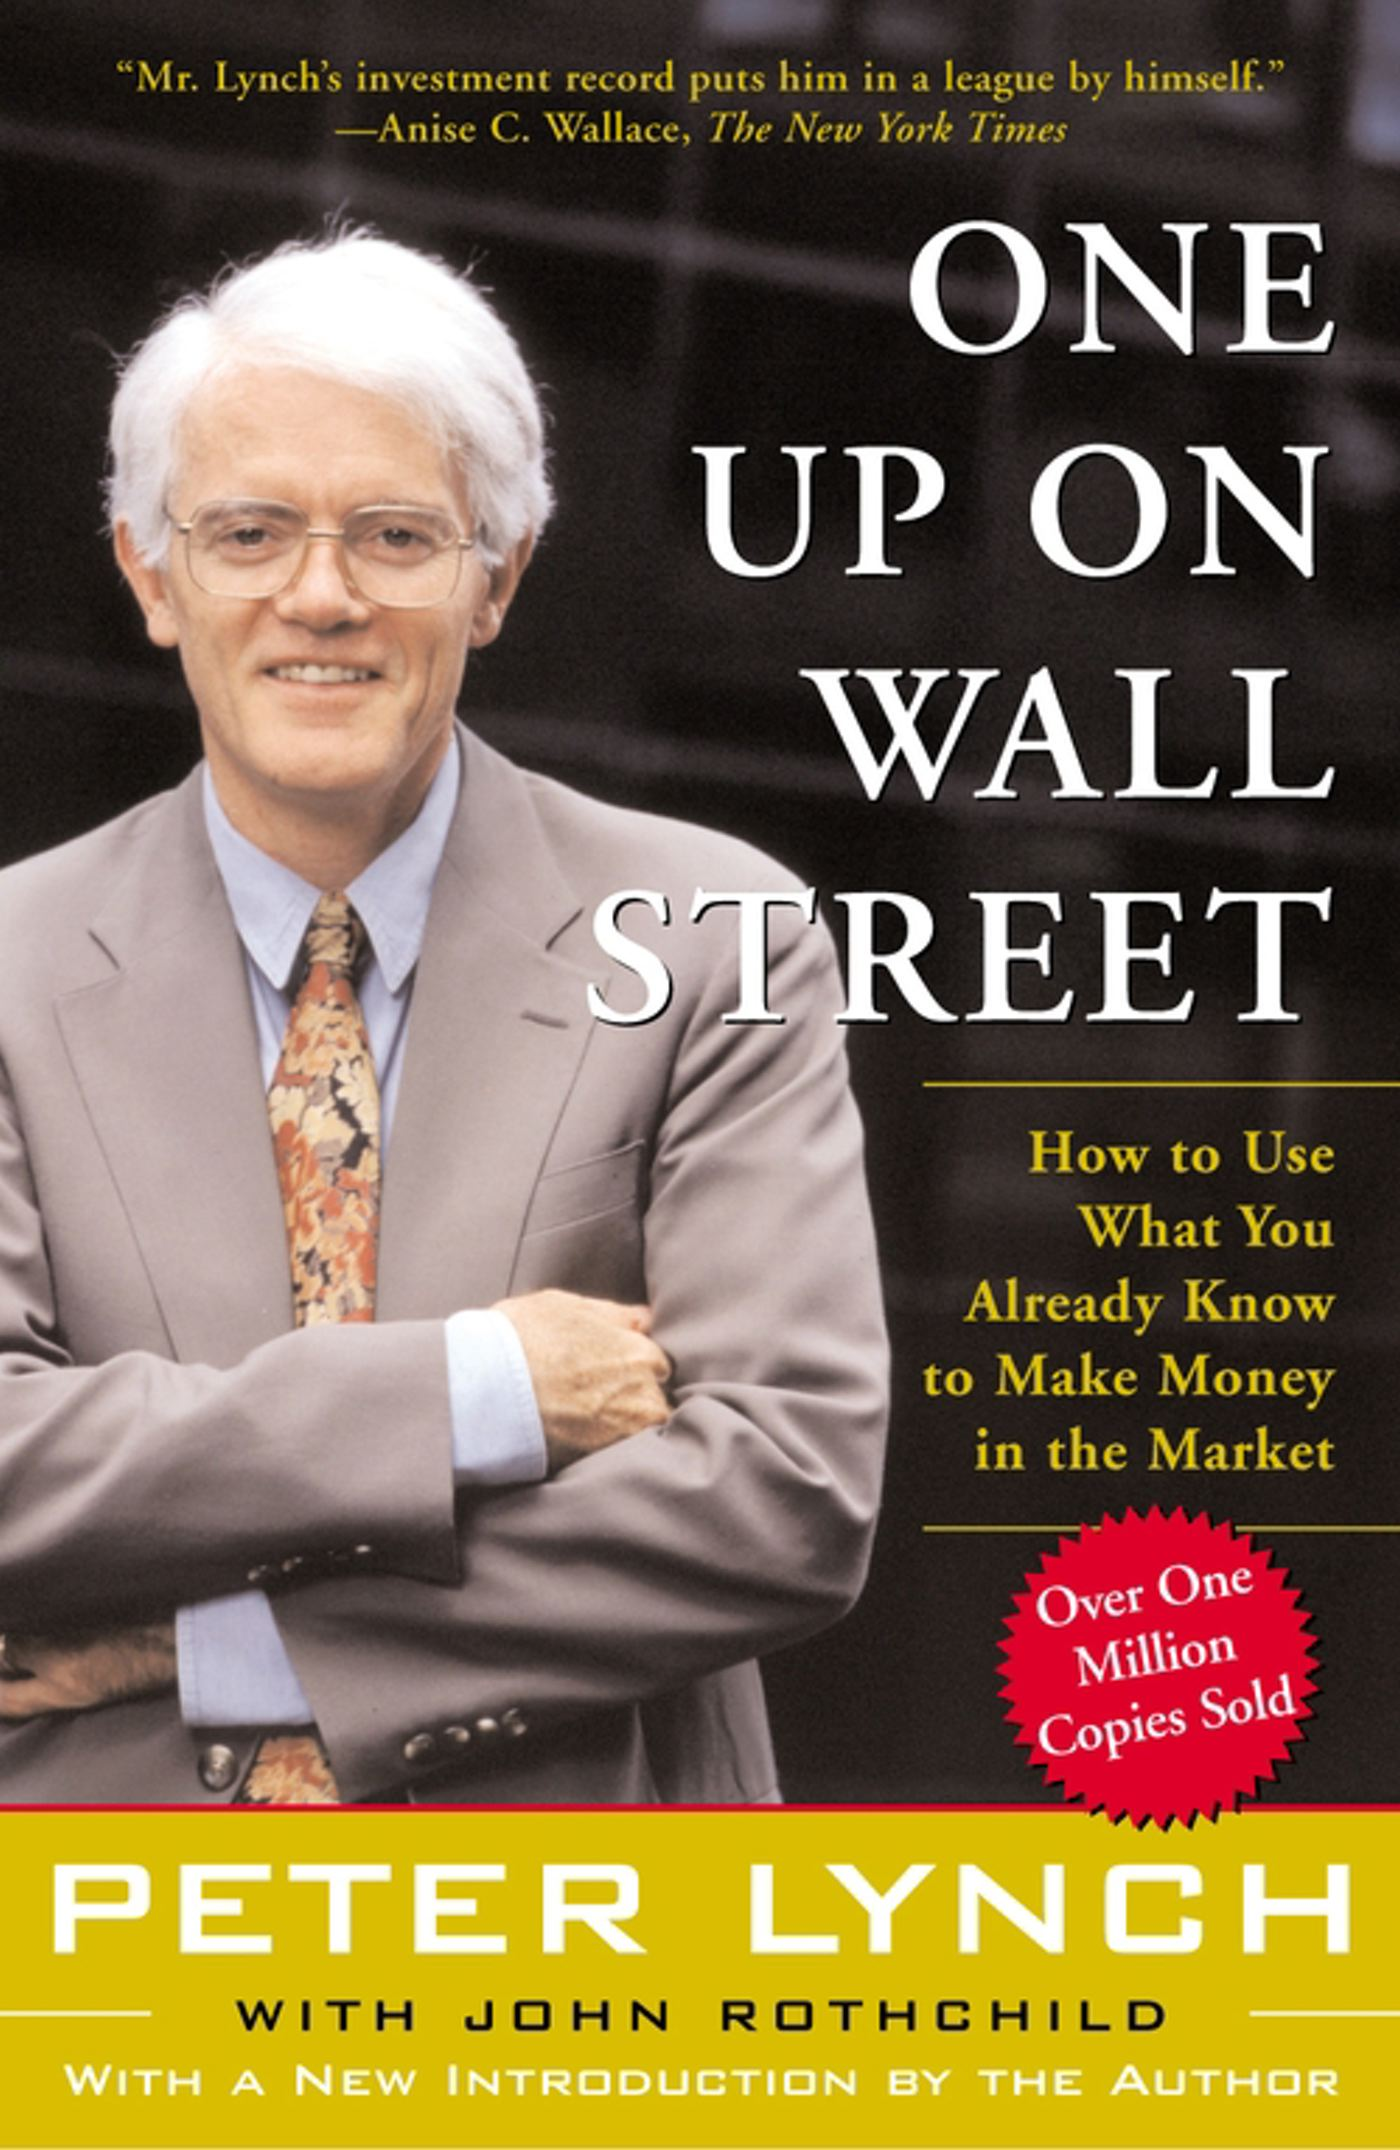 Book Cover Image (jpg): One Up On Wall Street